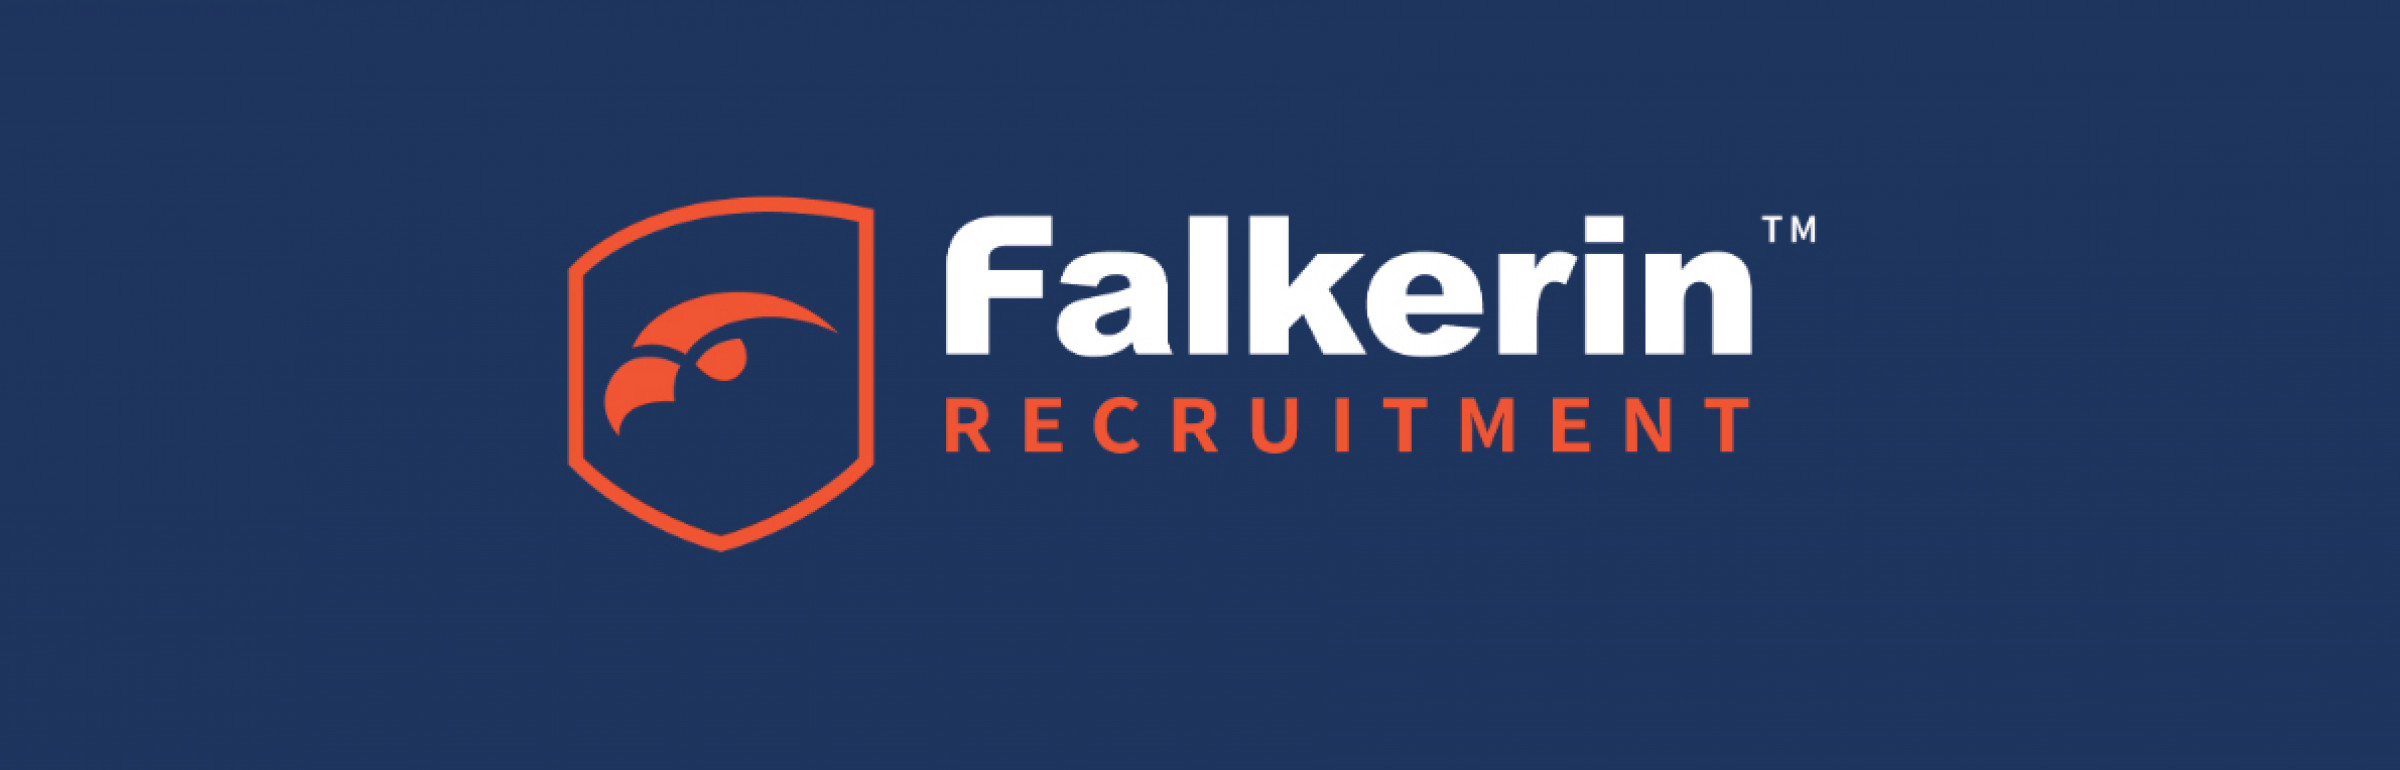 Banner Falkerin™ Recruitment